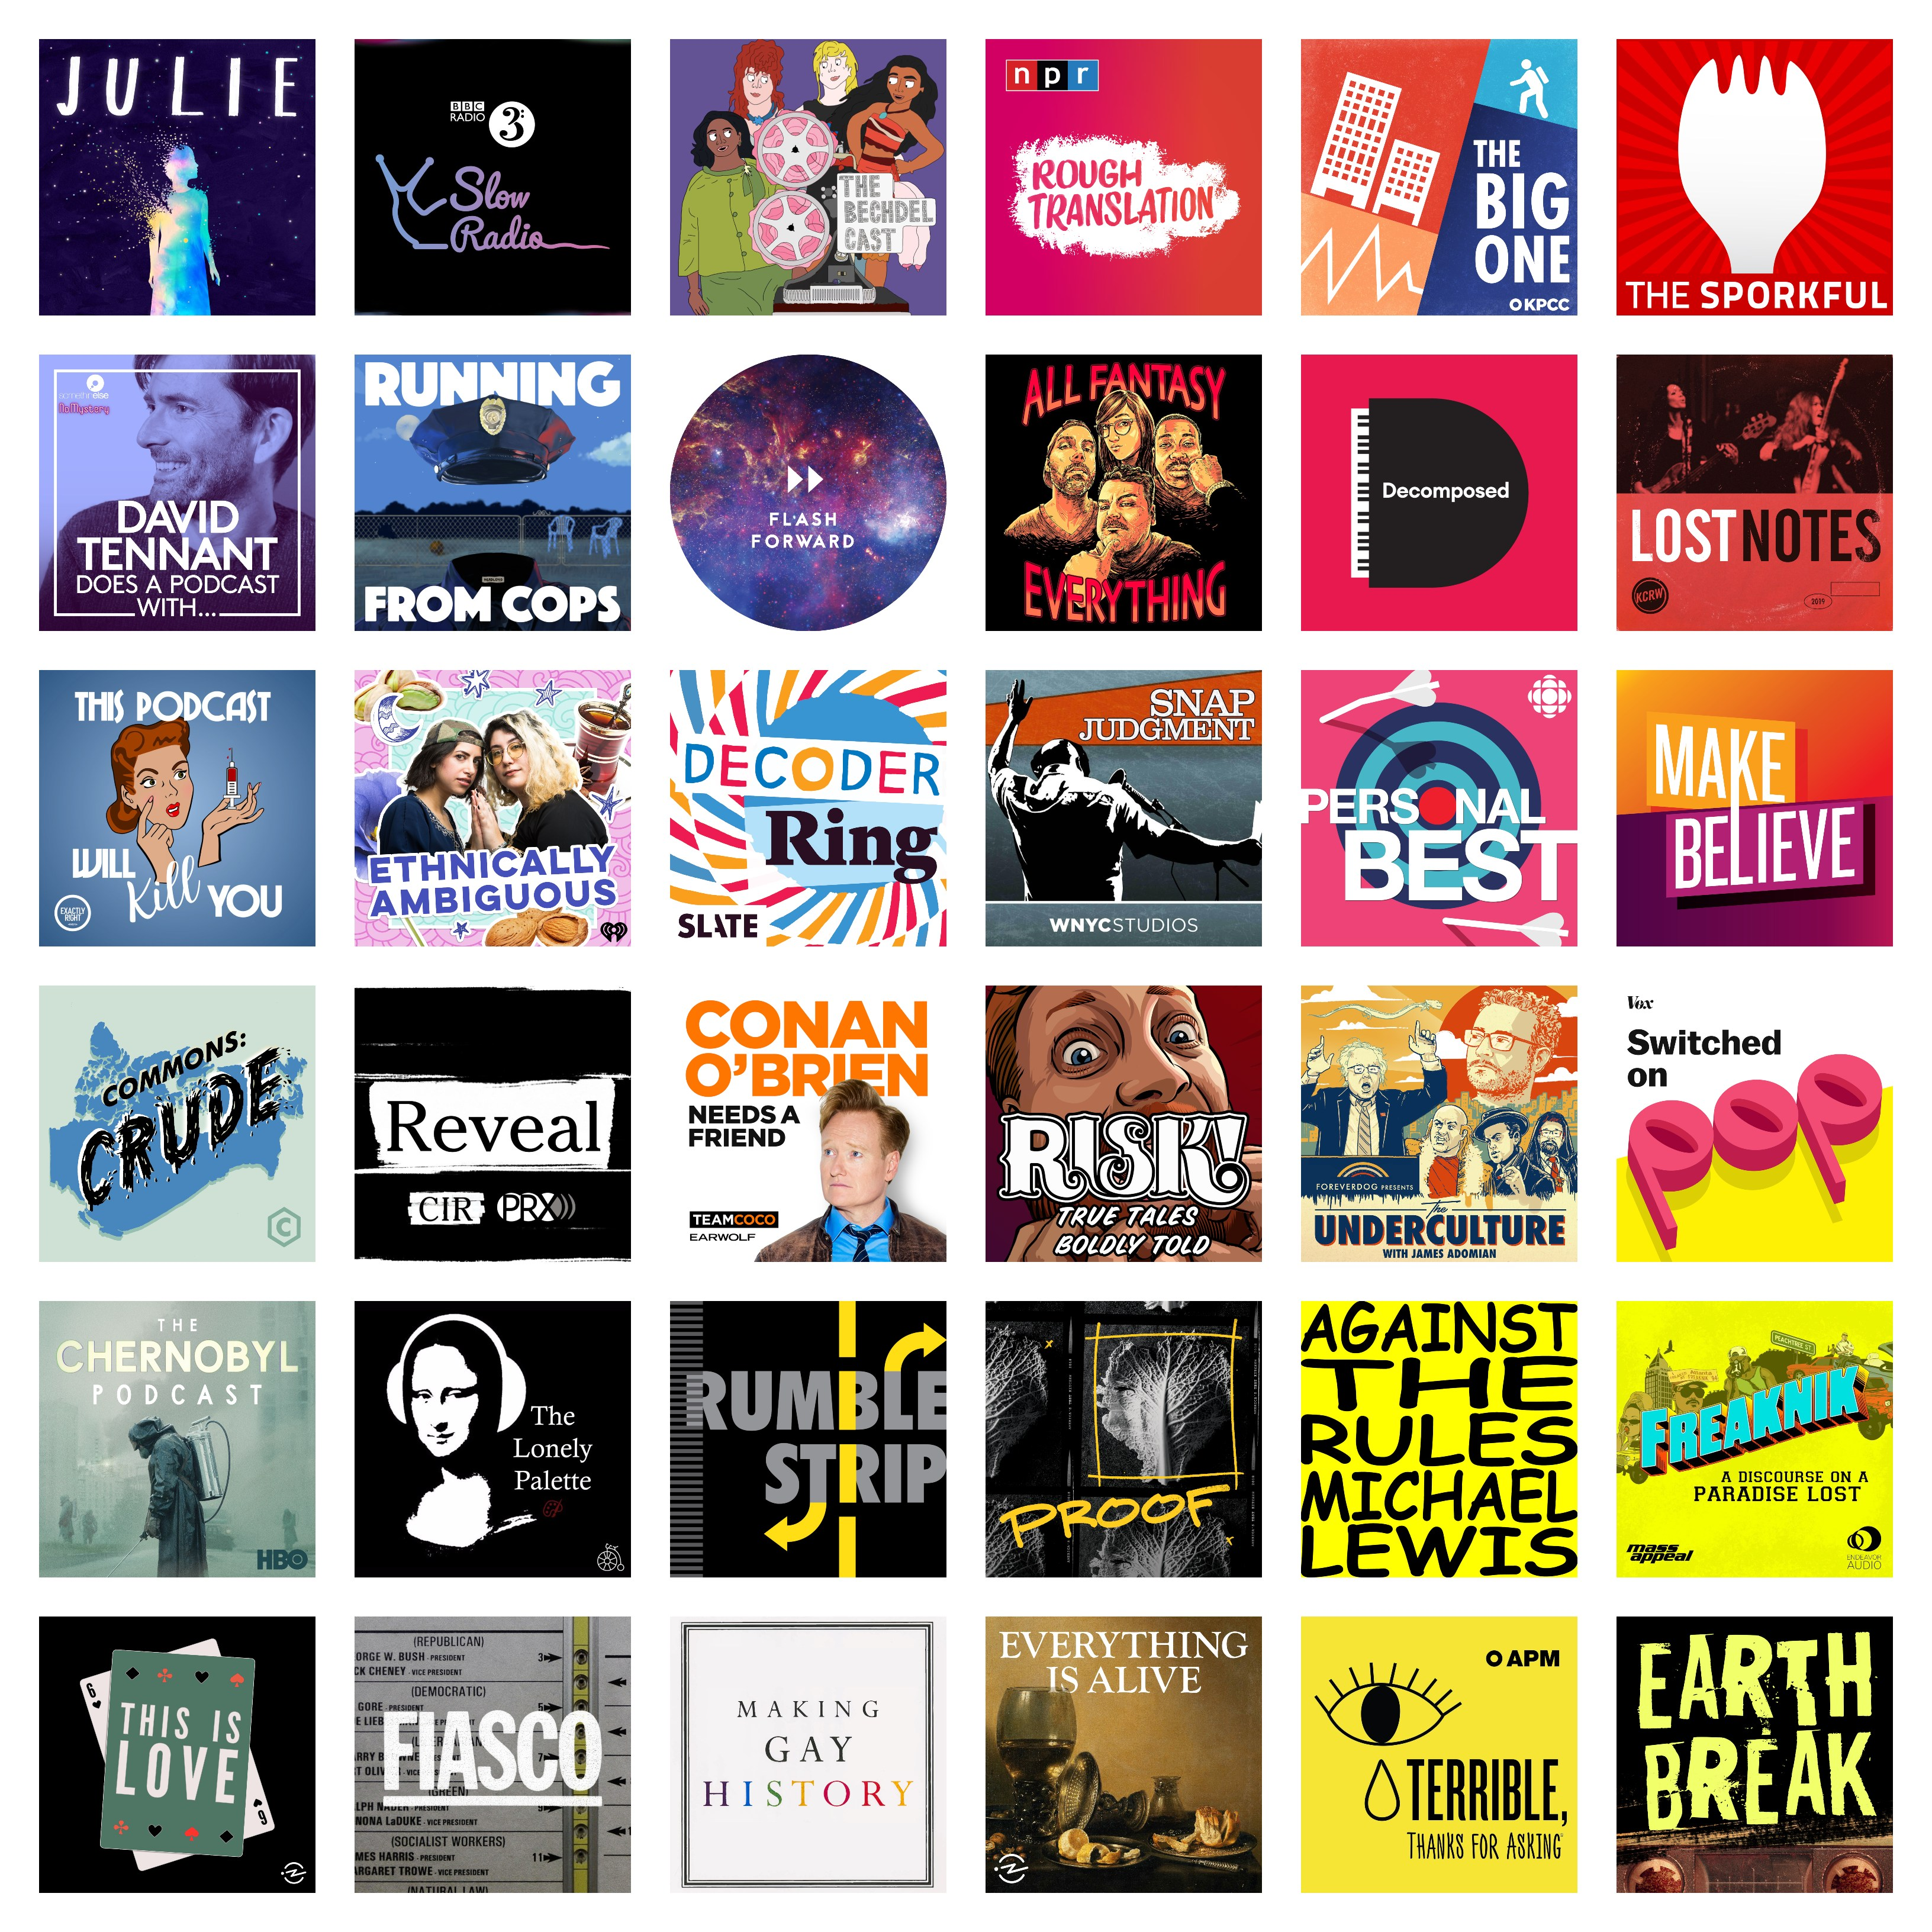 Best Business Podcasts 2021 The Best Podcast Episodes of 2019 (So Far) | IndieWire